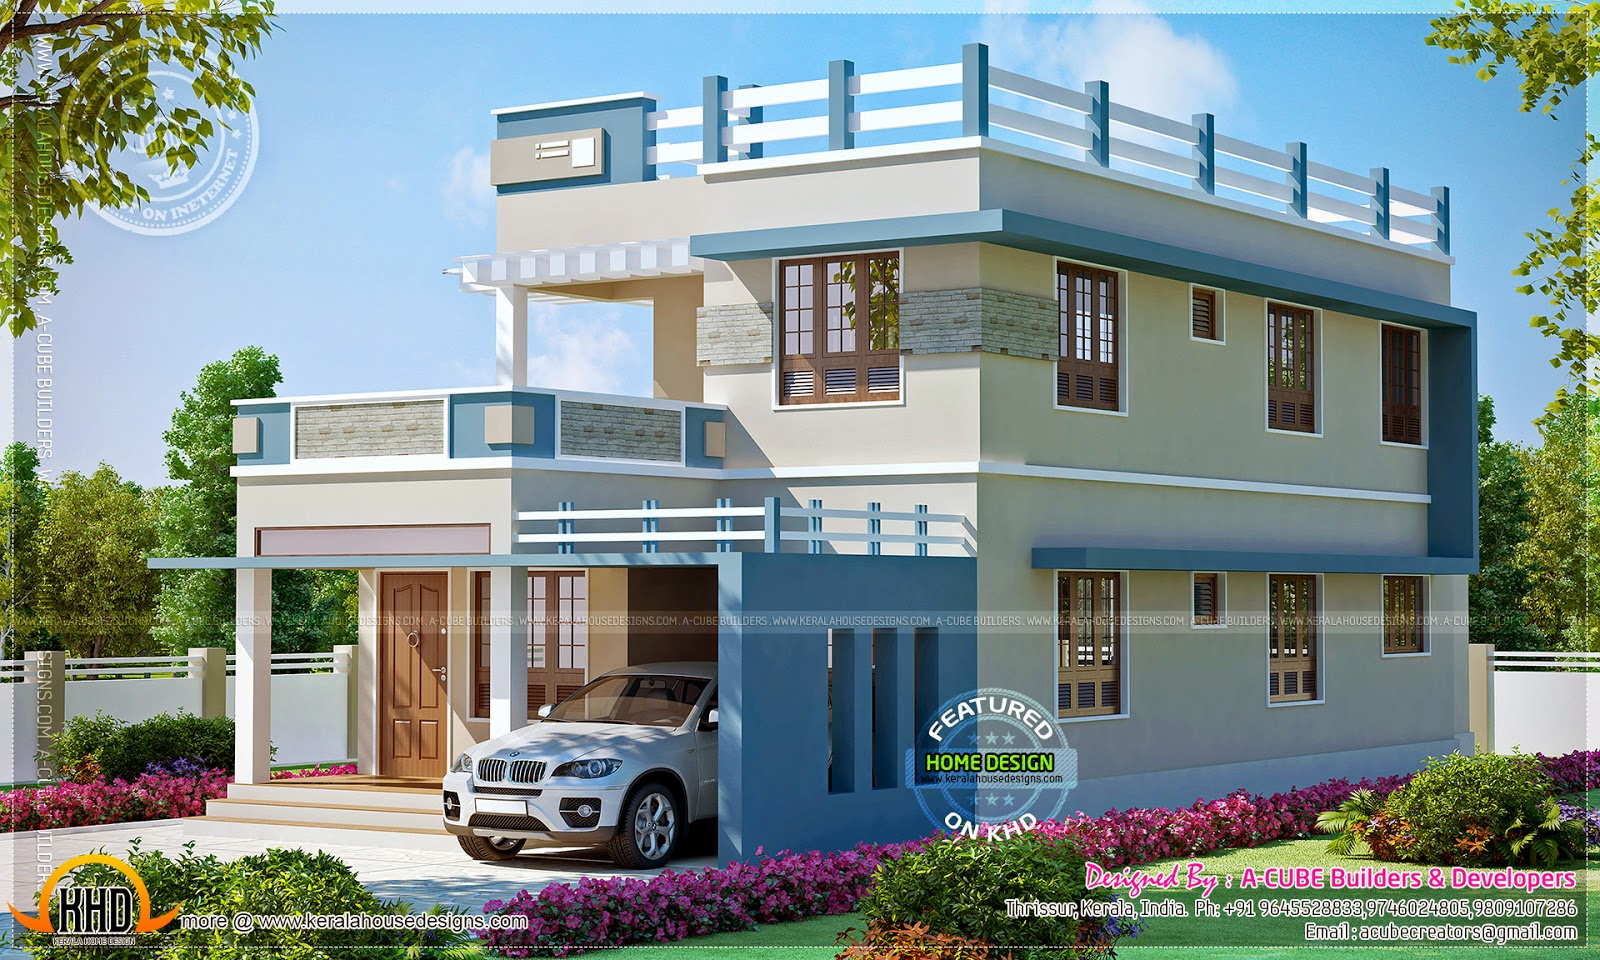 designs for new homes. new homes designs home cool home design